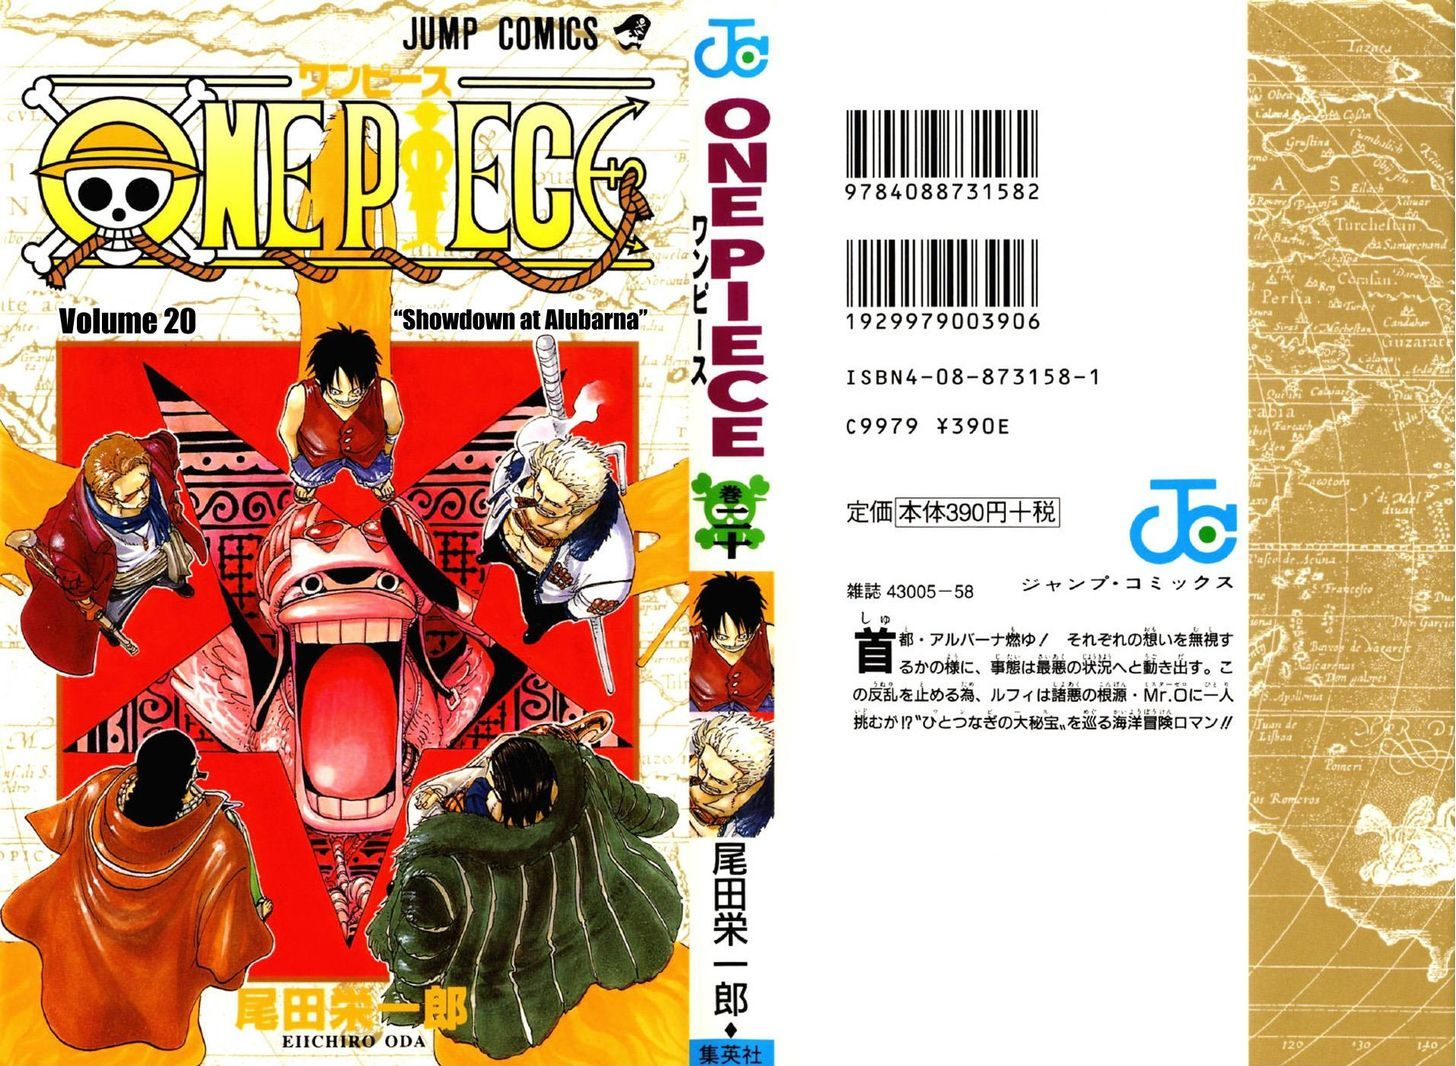 https://im.nineanime.com/comics/pic9/32/96/2525/OnePiece1770630.jpg Page 1